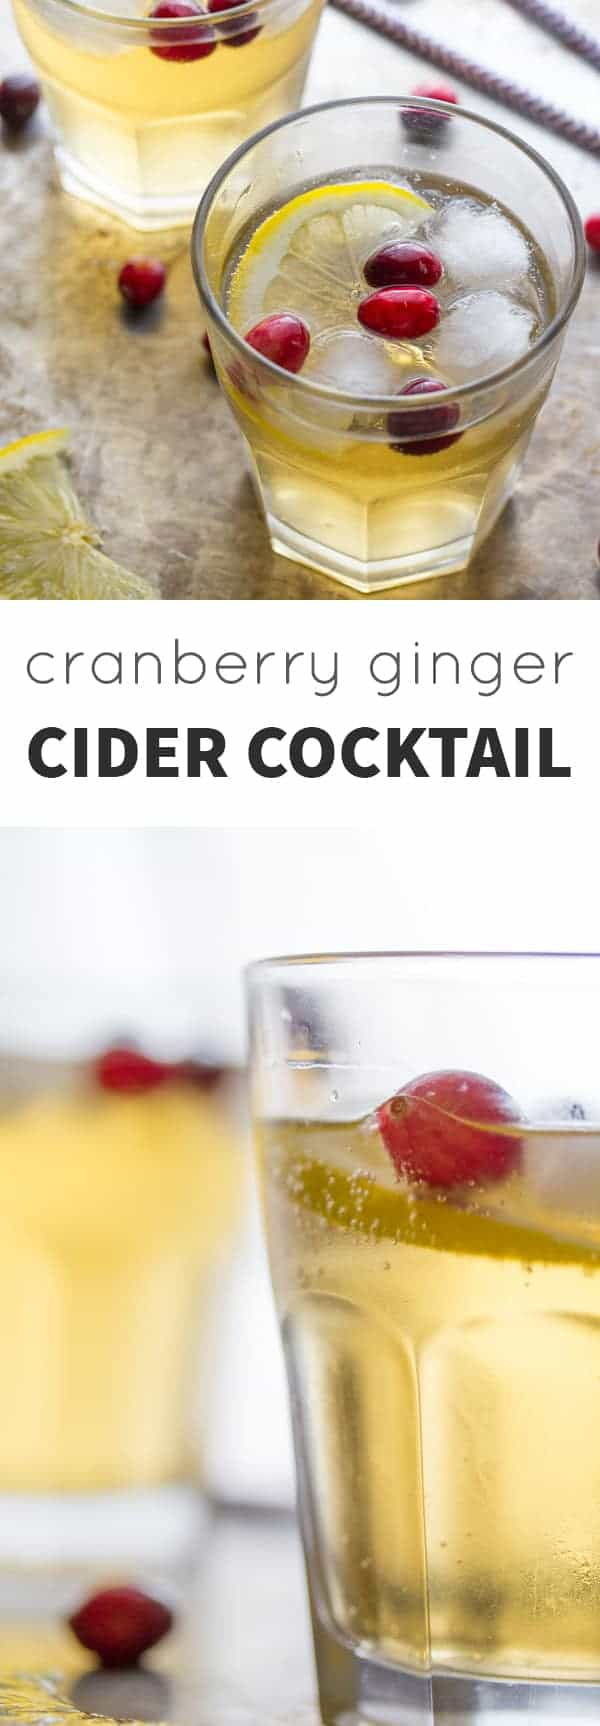 Cranberry Ginger Cider Cocktail @sweetpeasaffron